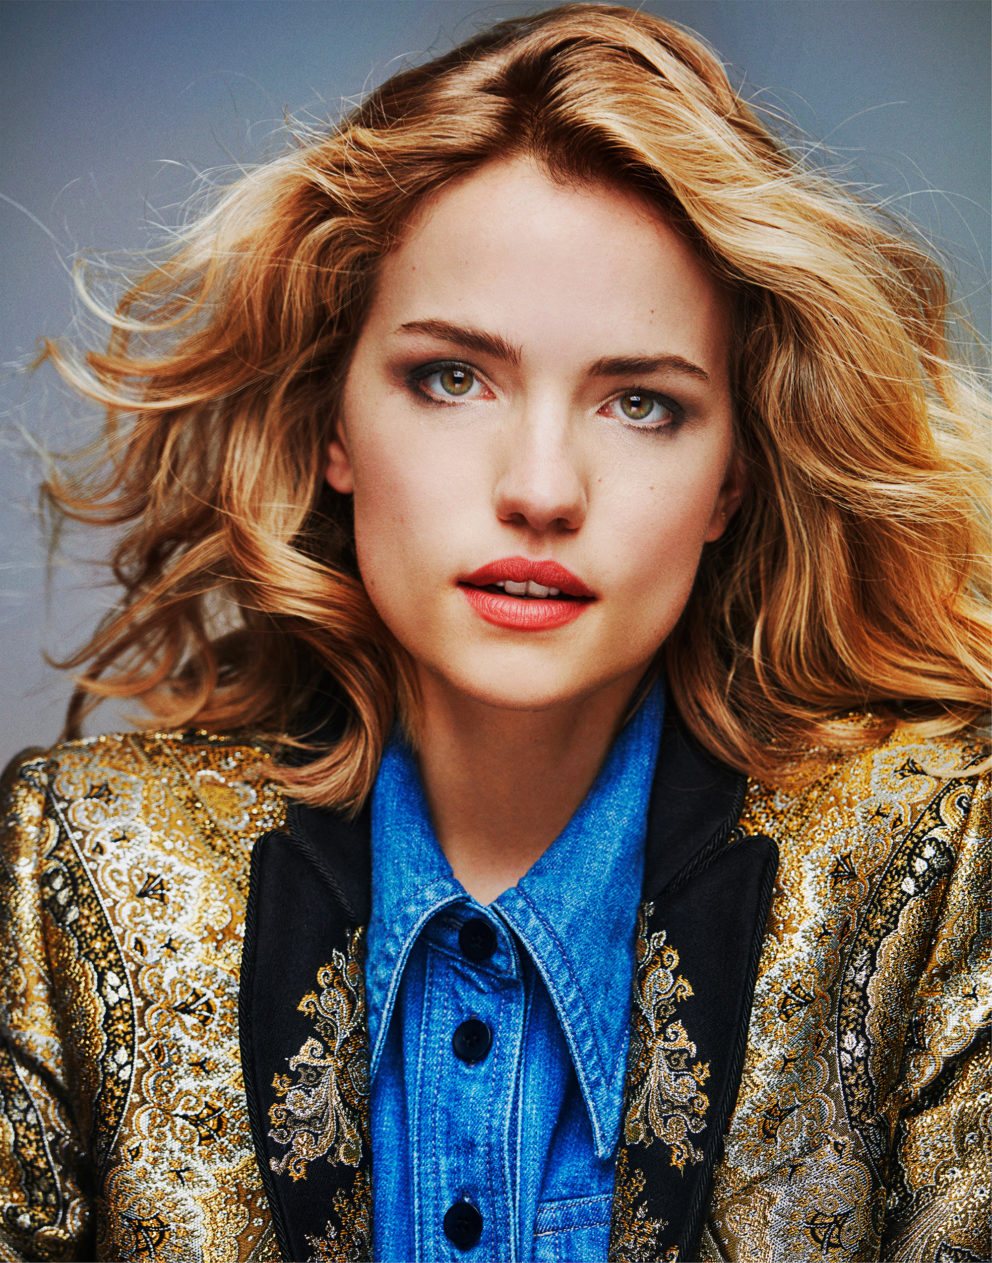 190925 0060 Sbjct Willa Fitzgerald 155 By Christian Hogstedt